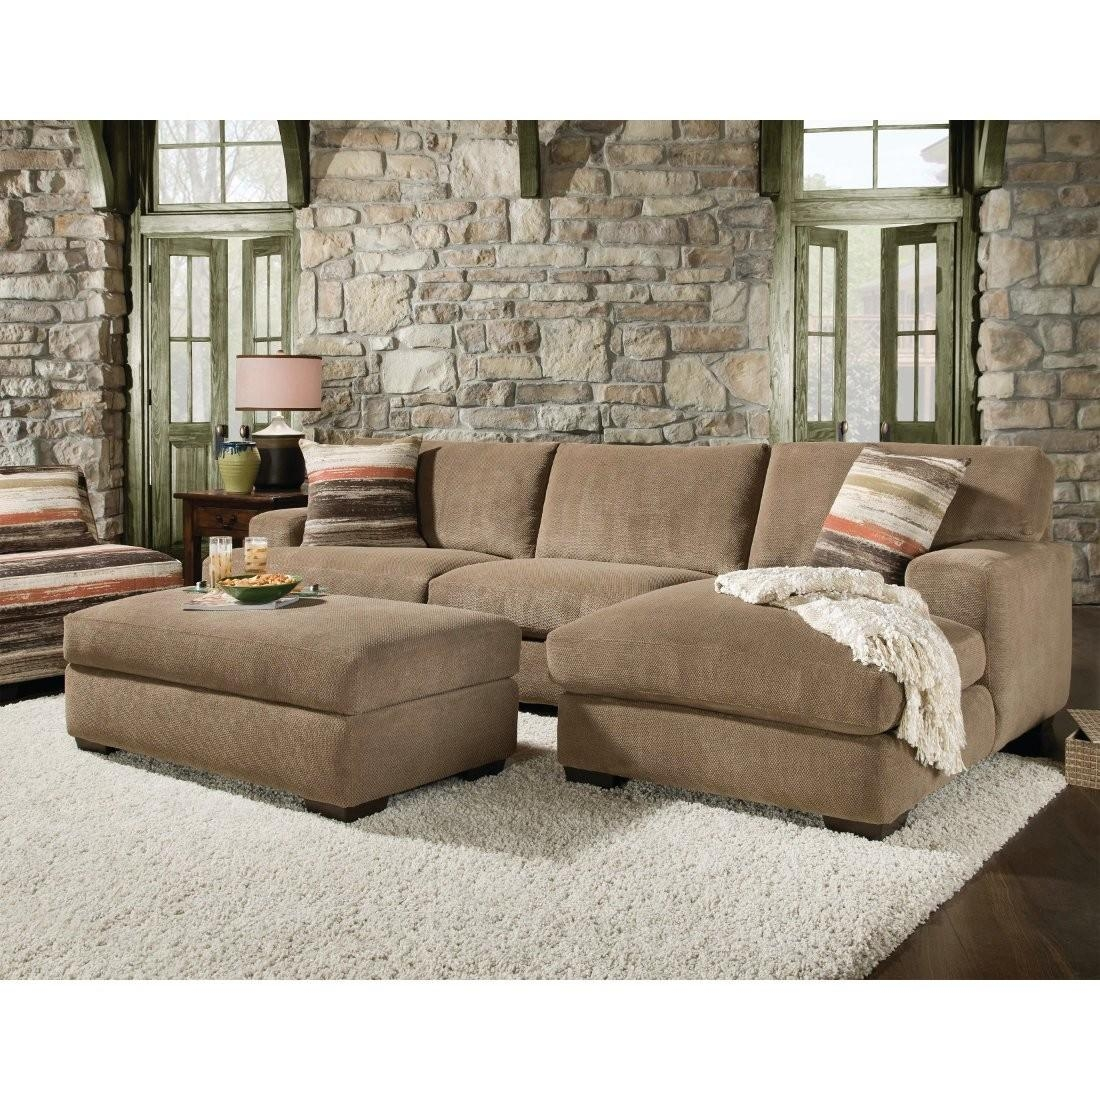 Furniture: Microfiber Chaise Lounge For Comfortable Sofa Design Inside Sofas And Chaises Lounge Sets (View 7 of 20)